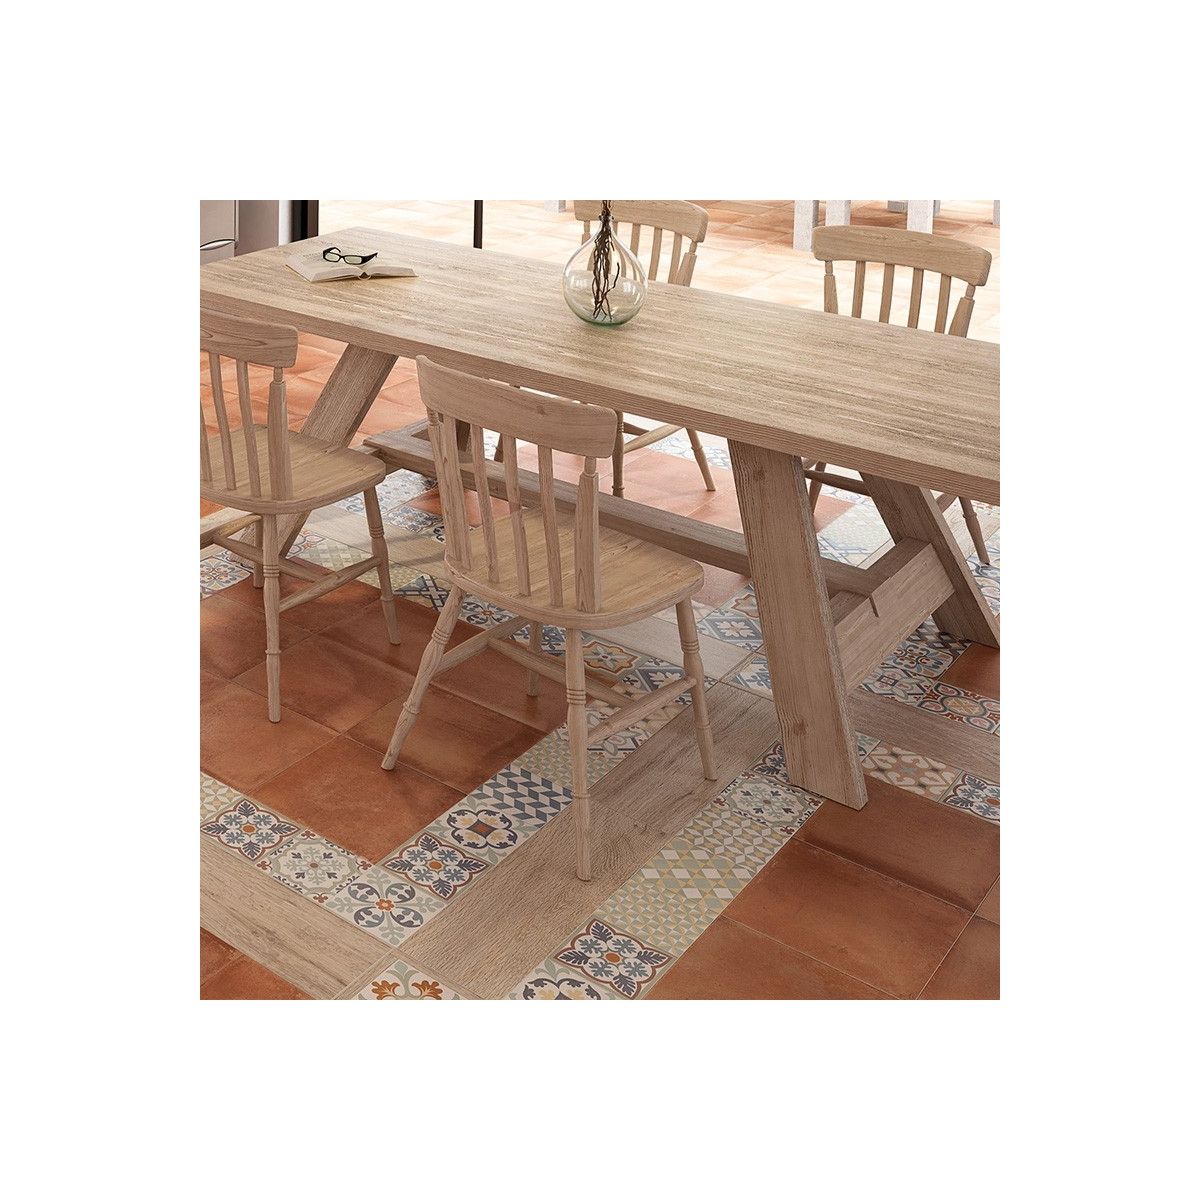 rustic cotto Gaya Fores S.L.